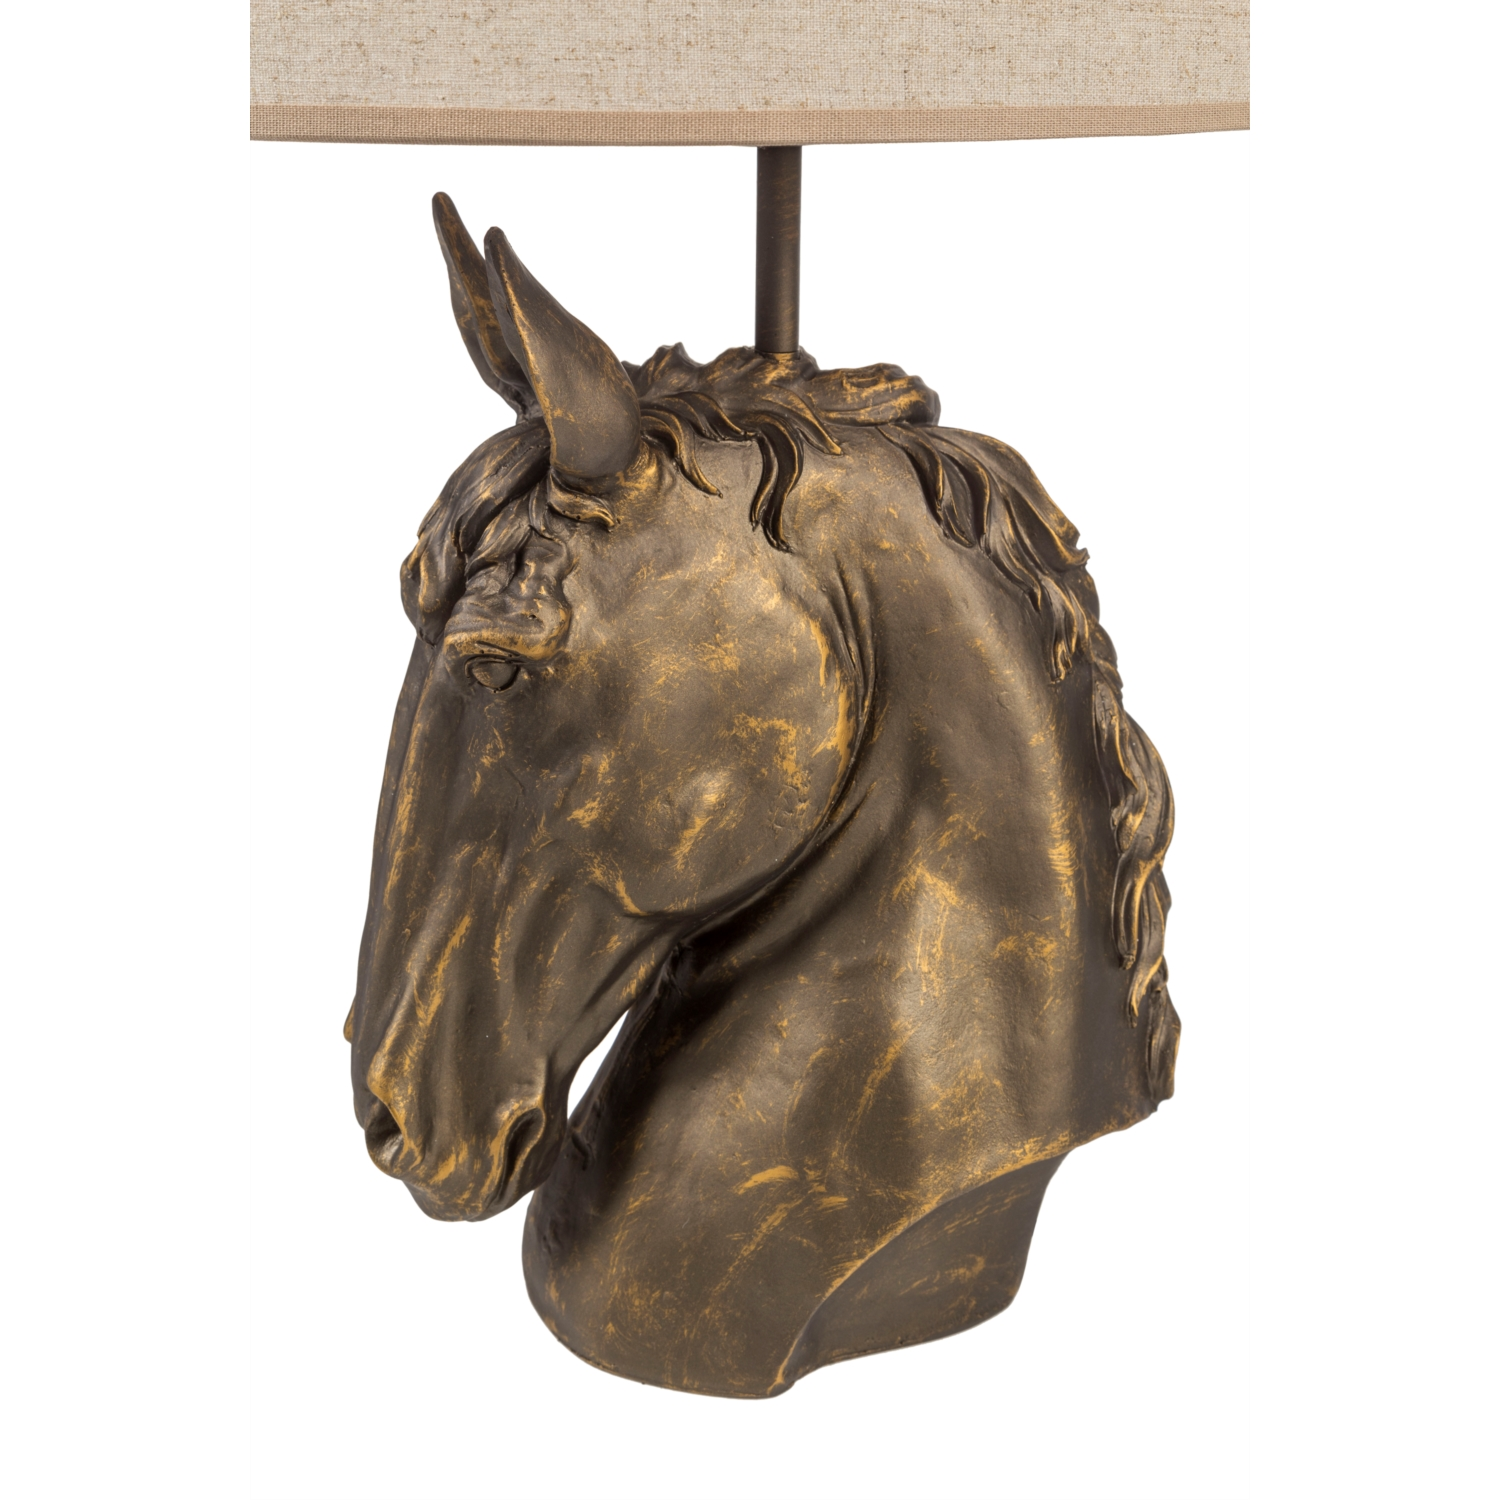 NEO CAVALLO BRONZ AT ABAJUR